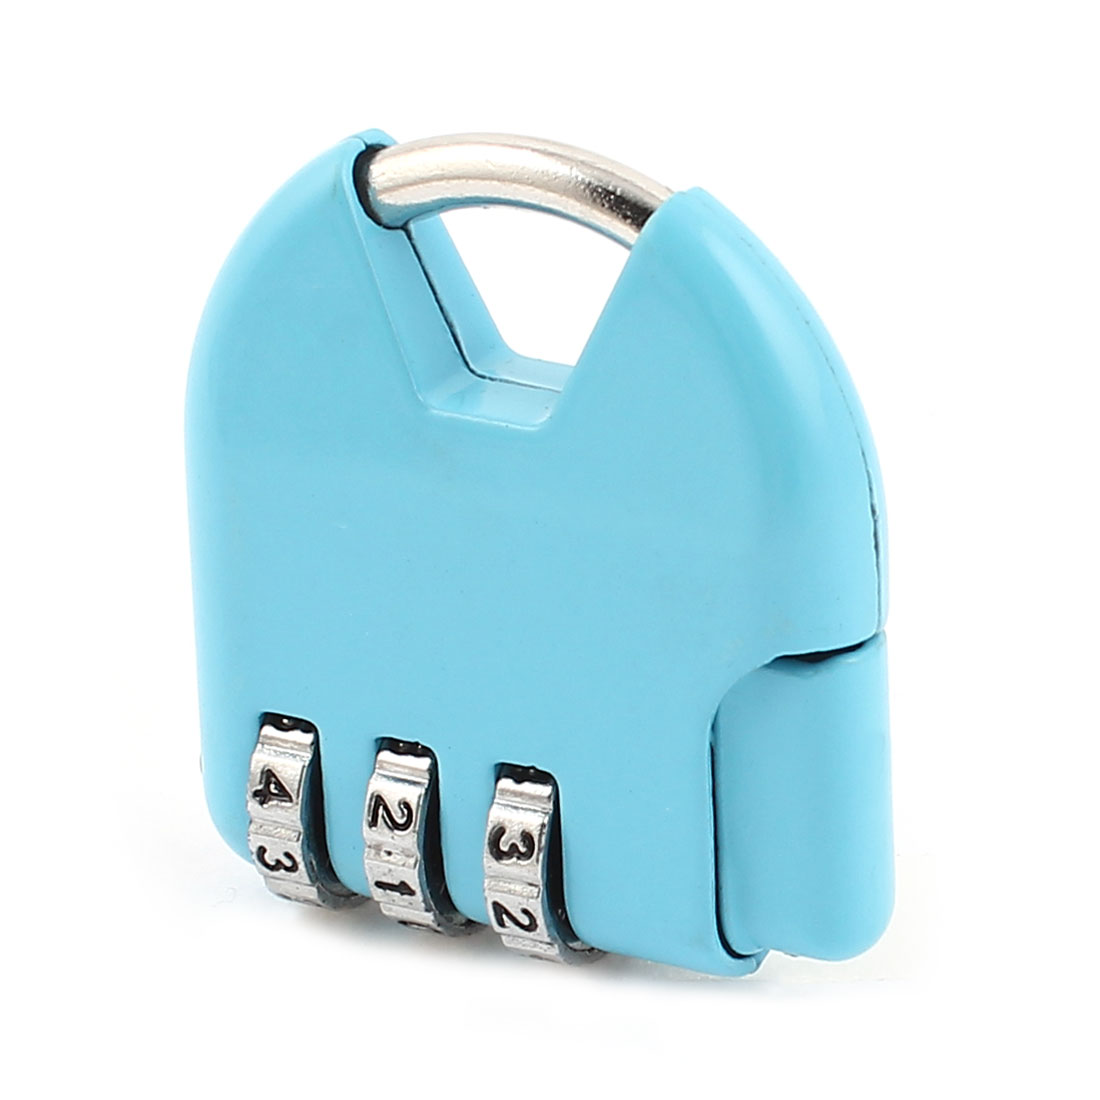 Blue 3 Dial Digitals Password Combination Luggage Safety Padlock Lock